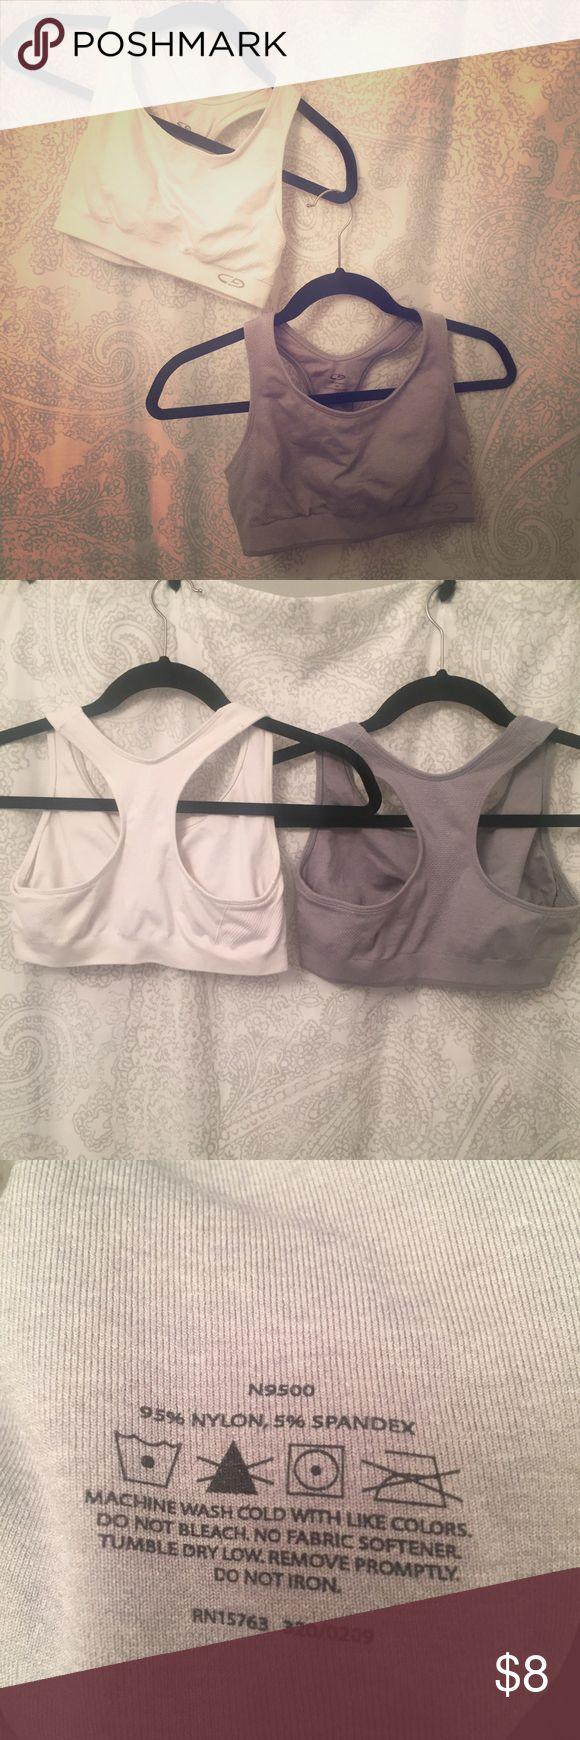 Champion sports bra bundle 2 racerback sports bras in great condition. Worn only a couple of times. 📦 bundle and save! Champion Intimates & Sleepwear Bras